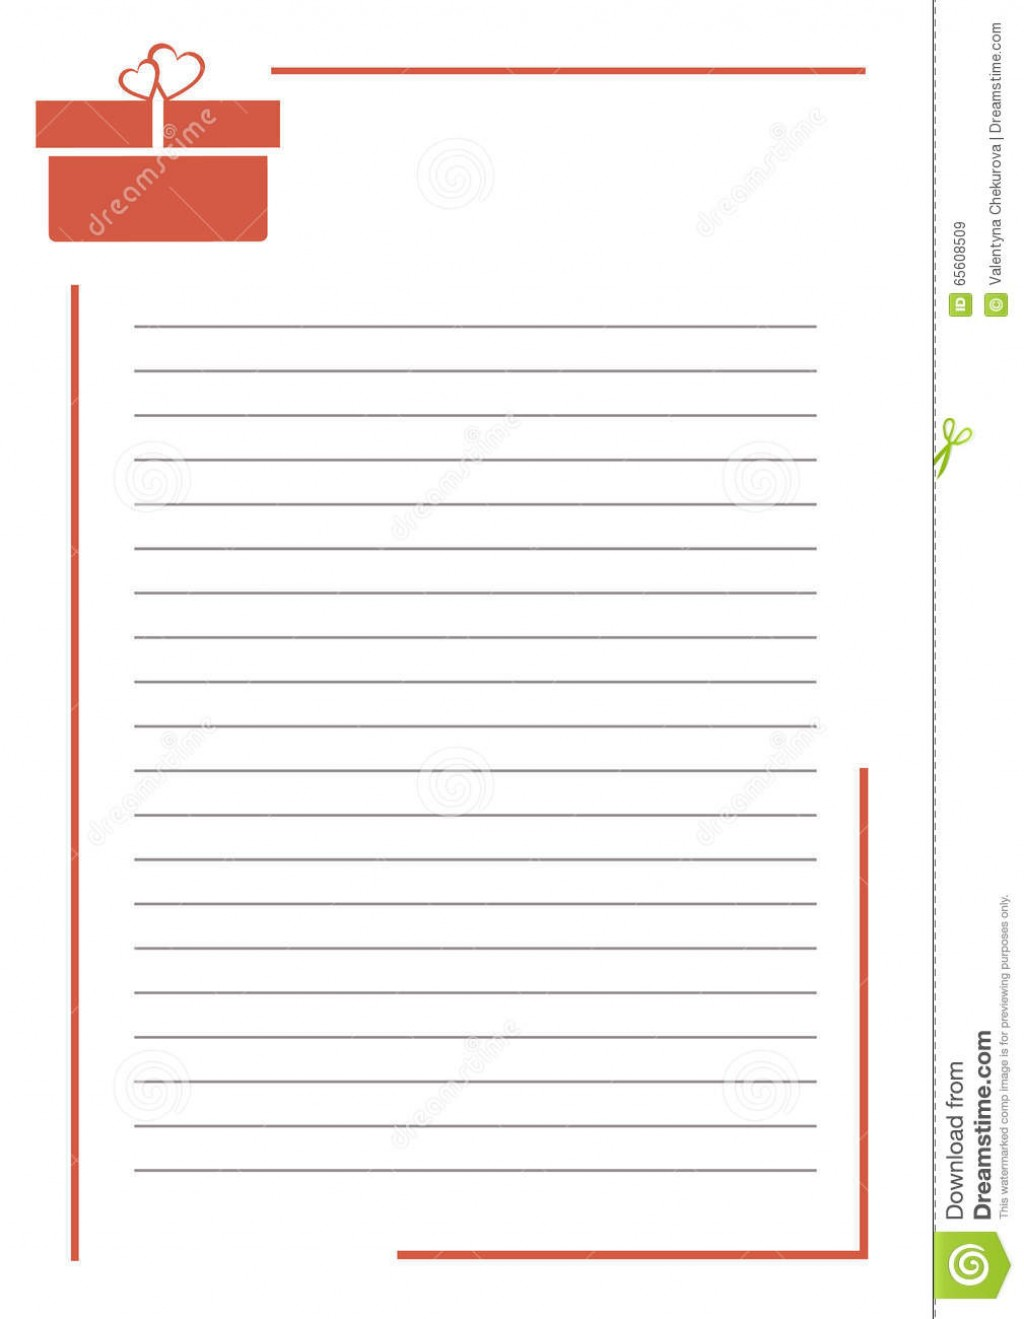 005 Note Cards Research Paper Vector Blank Letter Greeting Card White Form Red Gift Box Lines Border Format Size Wonderful Apa Examples For A Large